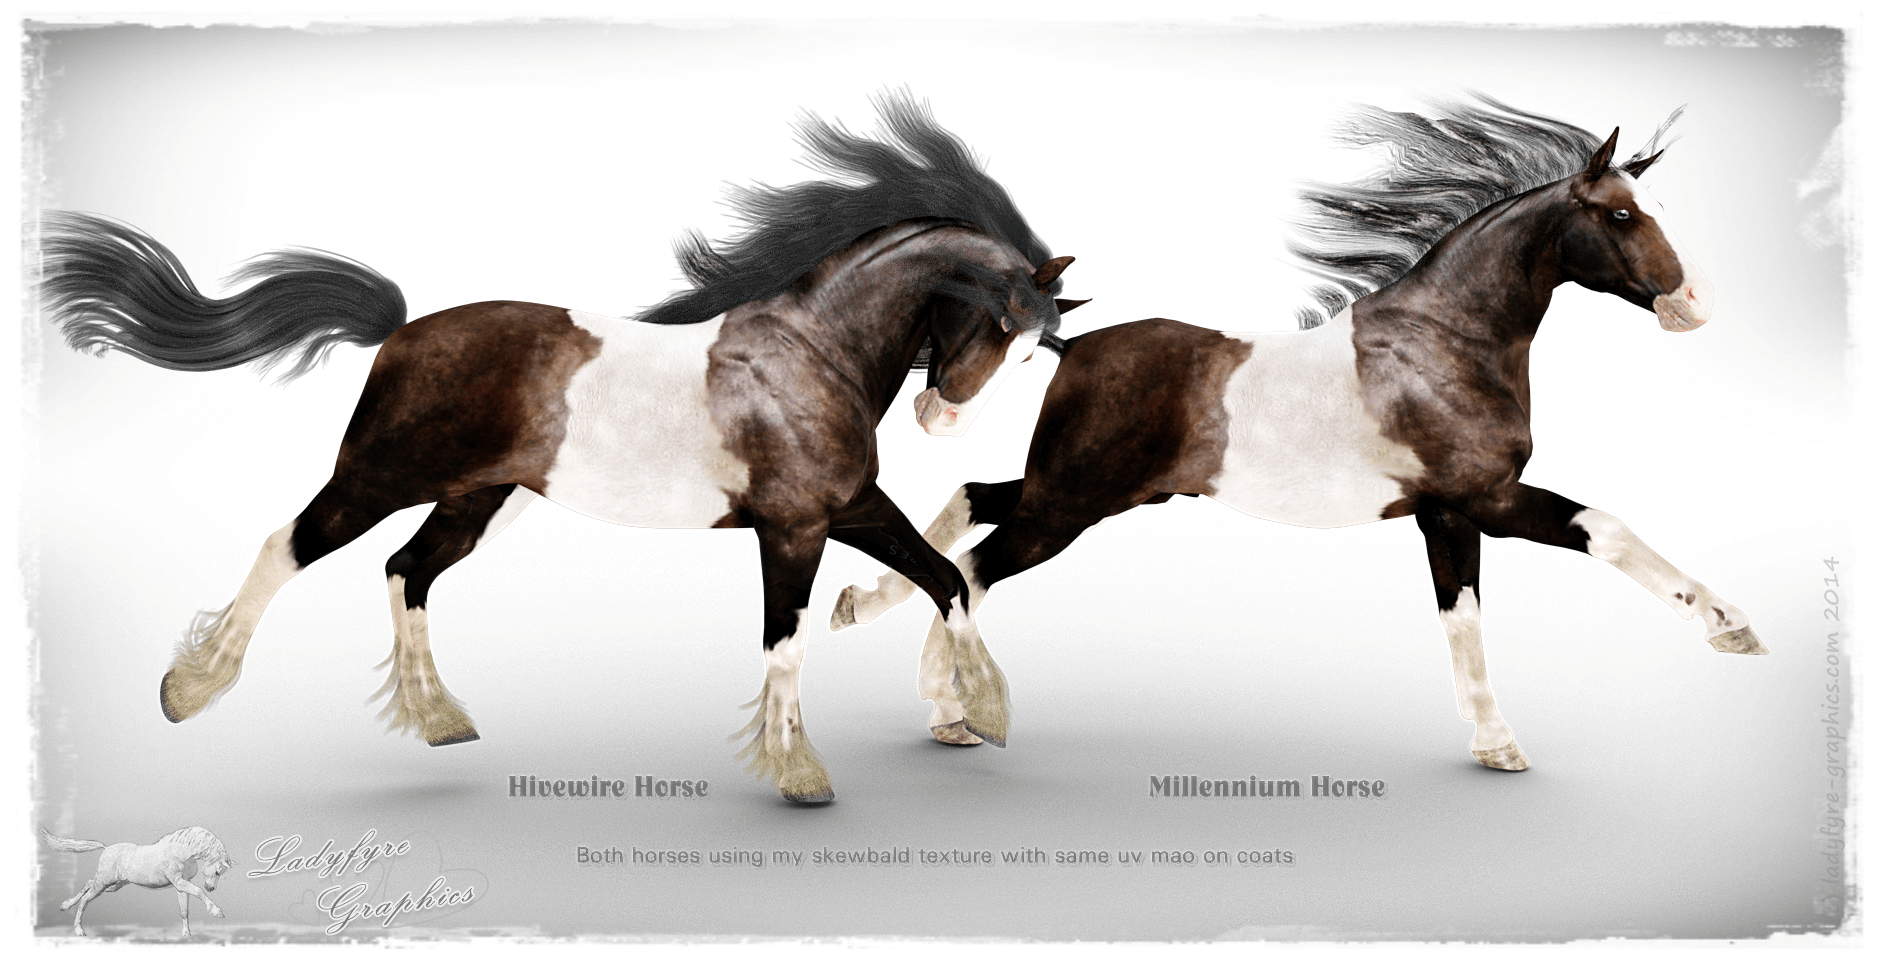 Hivewire Horse Remap to Take Millennium Horse Textures